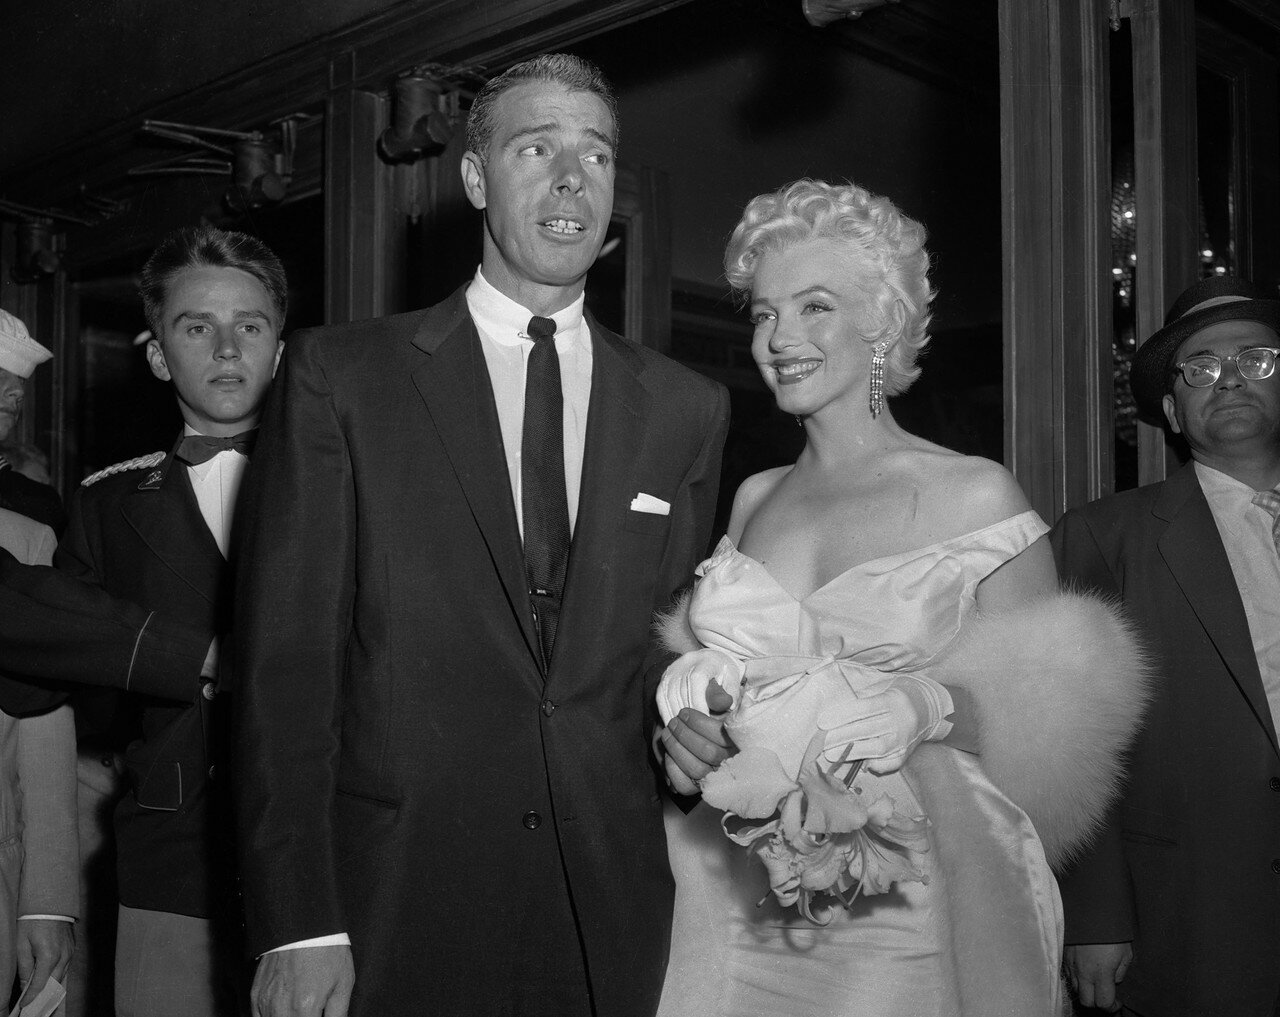 Joe DiMaggio with Marilyn Monroe